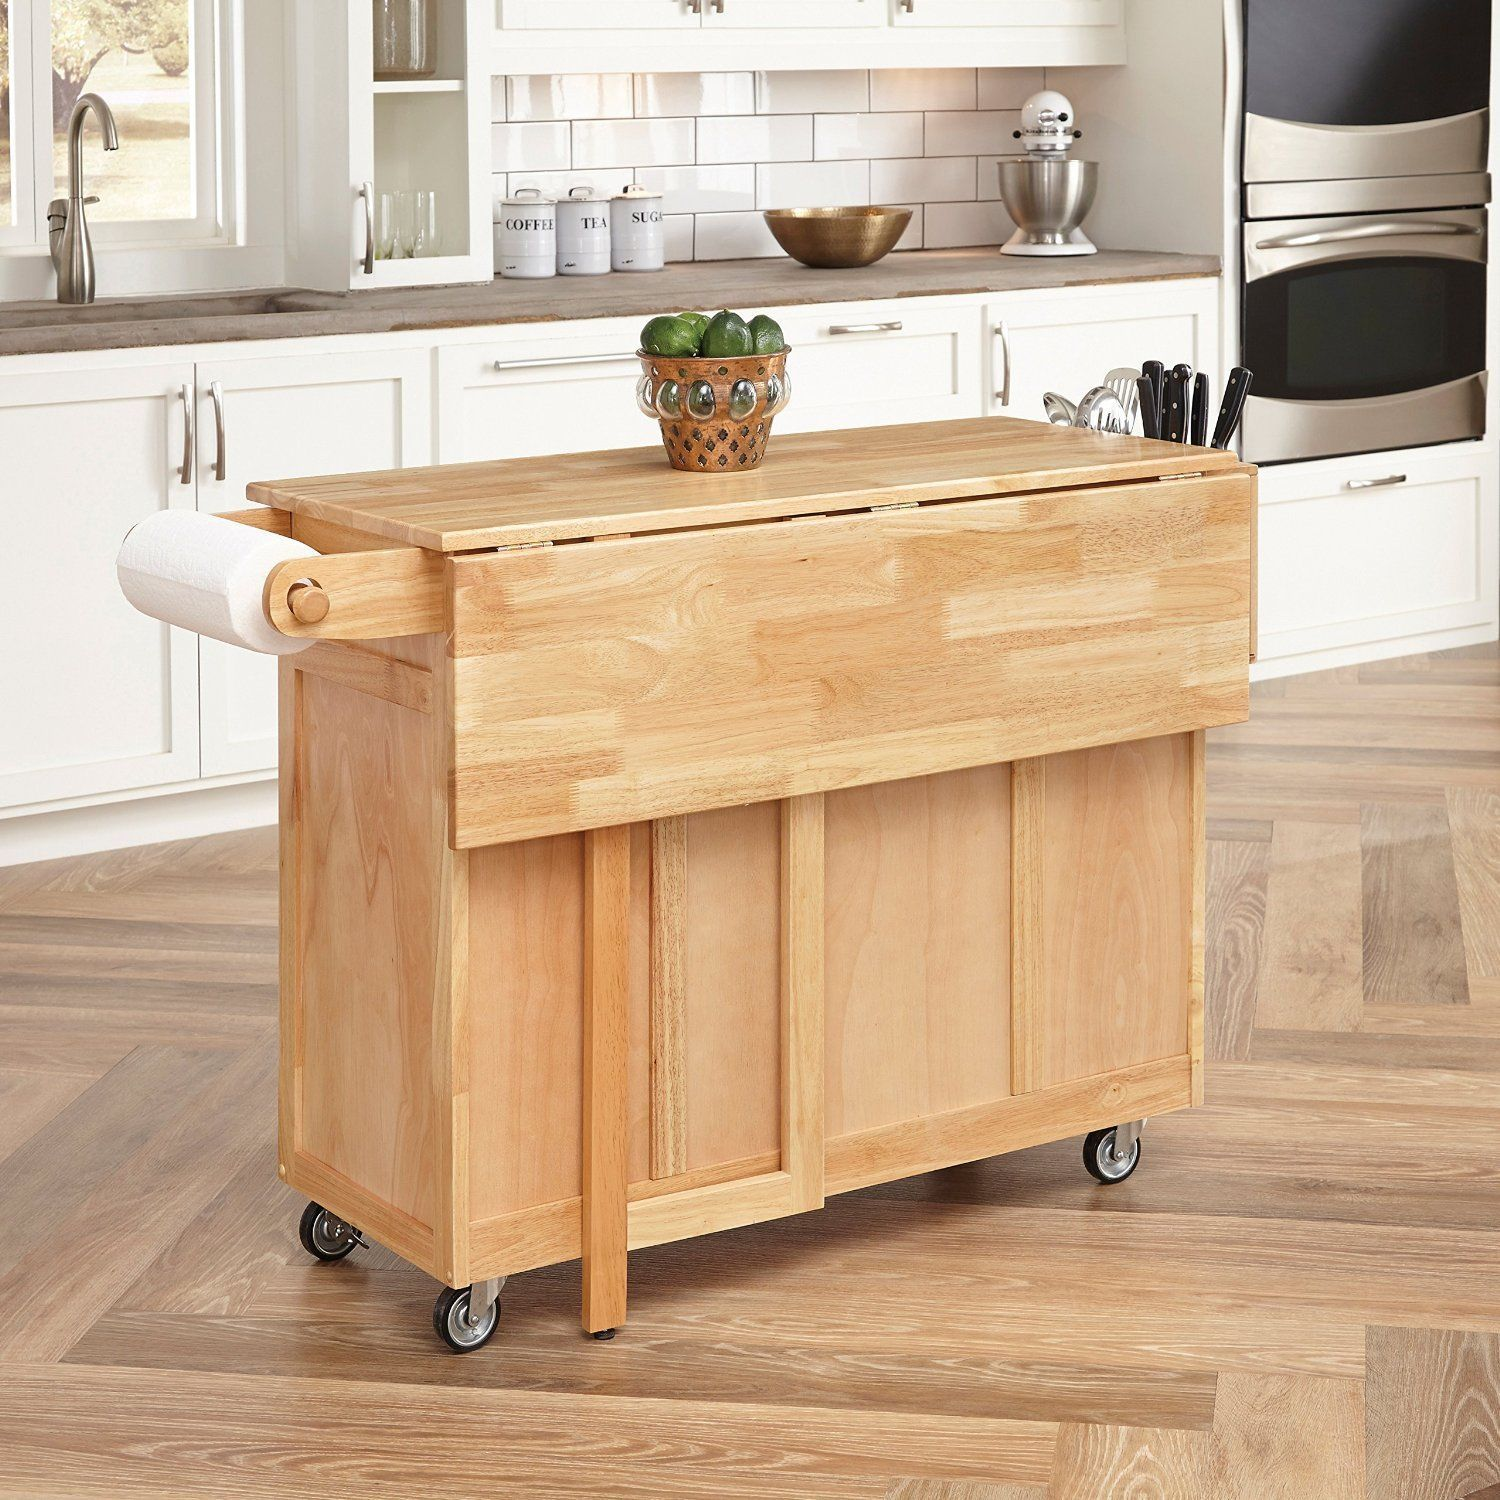 Kitchen Cart Island Breakfast Bar Table Rolling Storage Drawers Shelves Sturdy Kitchen Cart Natural Wood Kitchen Kitchen Style